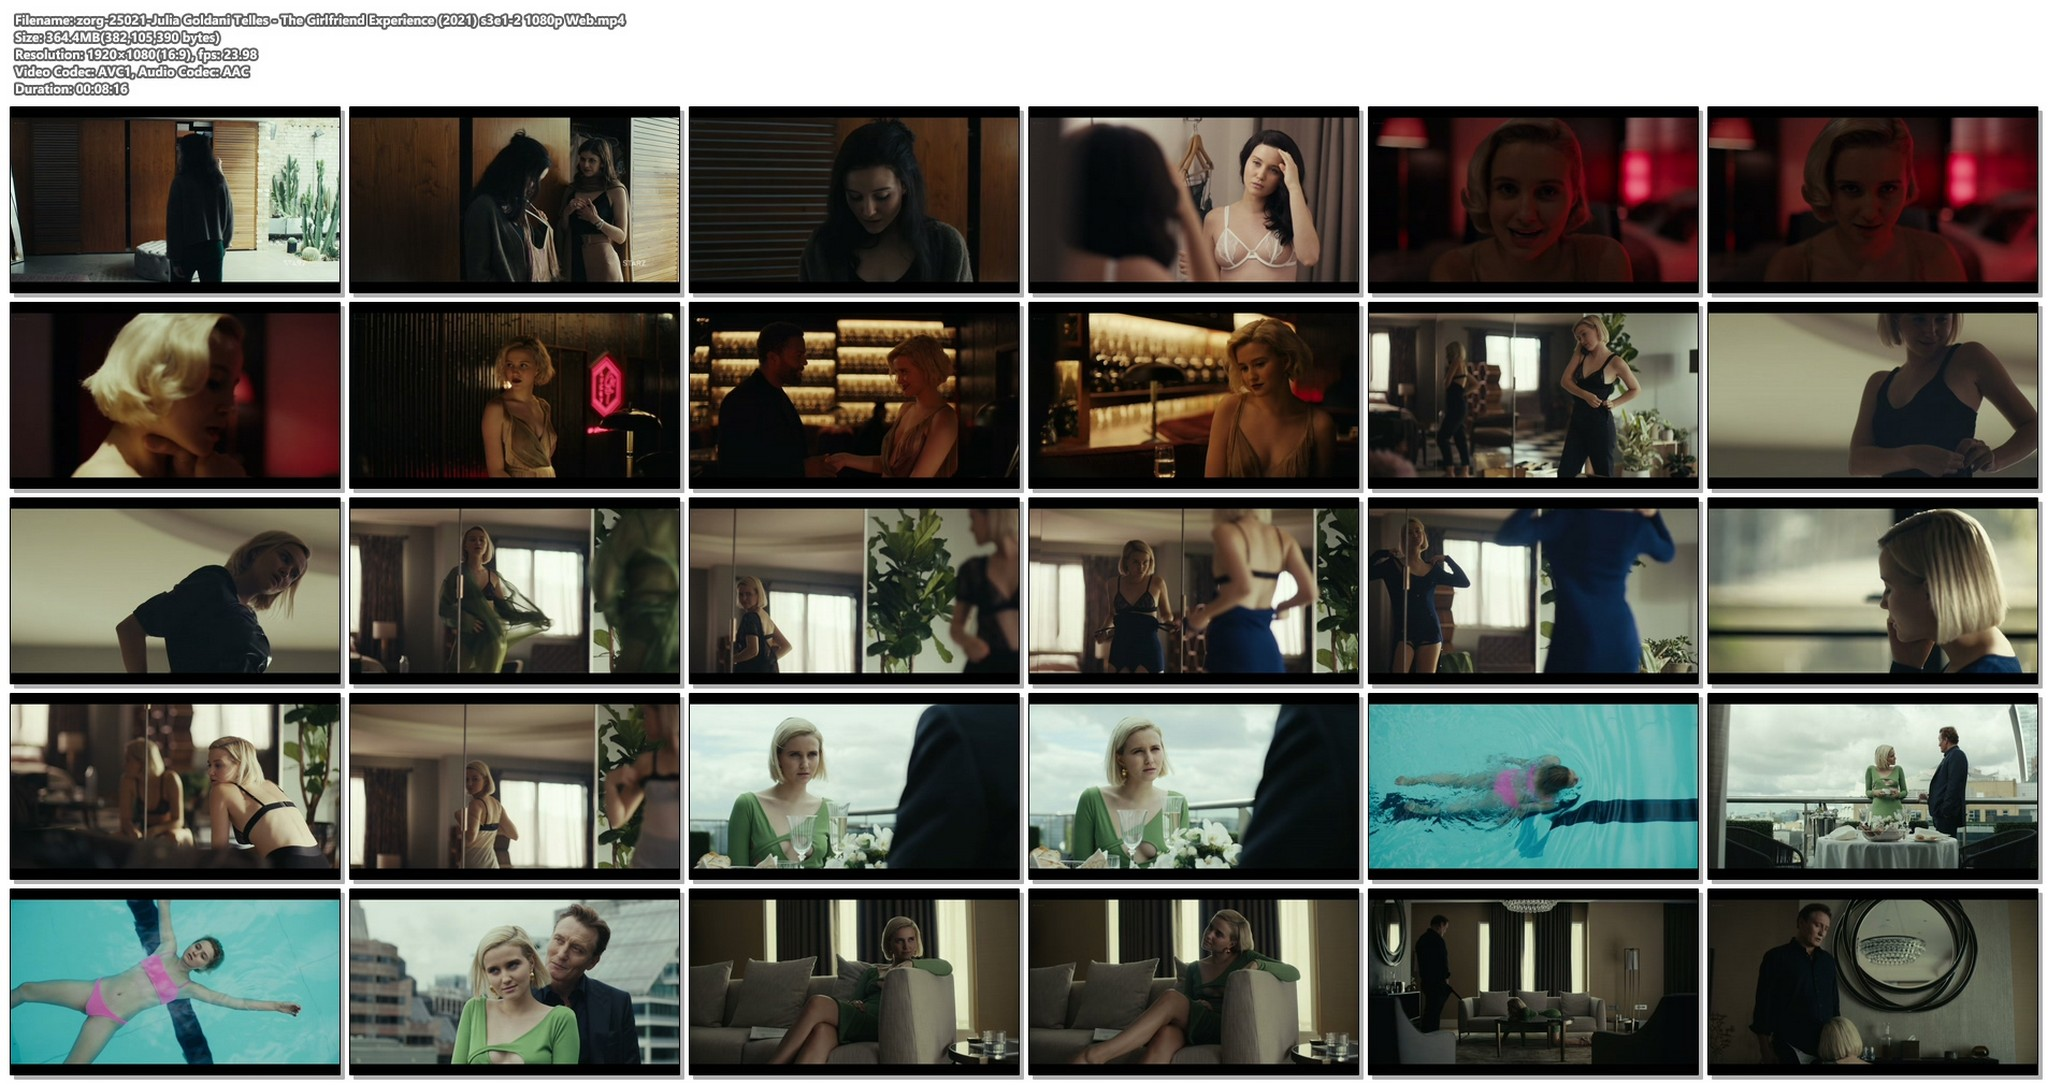 Julia Goldani Telles hot and sexy The Girlfriend Experience 2021 s3e1 2 1080p Web 19